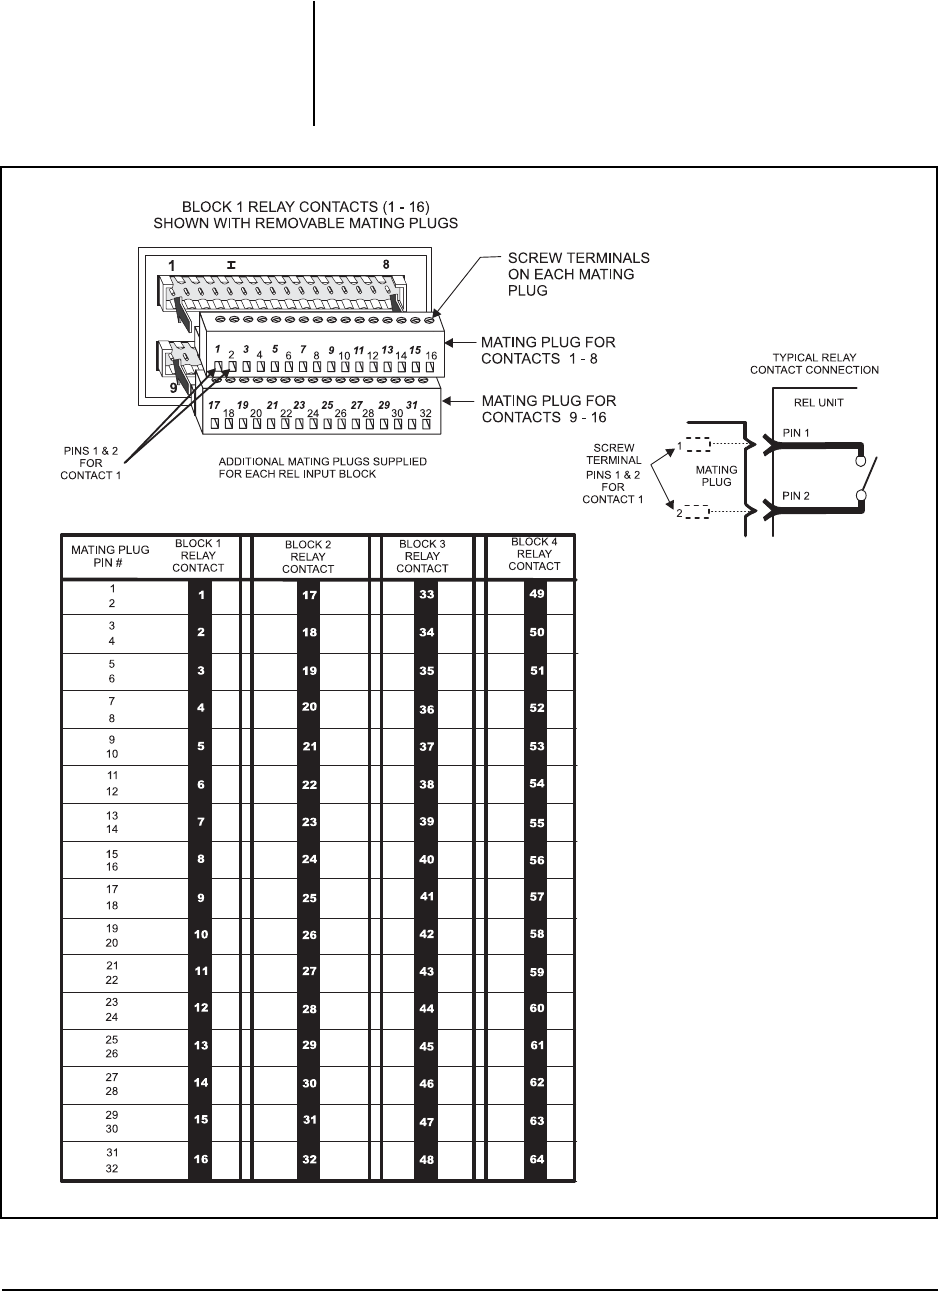 Off Road Light Bar Wiring Diagram And Fuse Box Vision X 191847962390 Together With 560979697305084000 Likewise 3 Square Xil Pdimmer As Well 2002